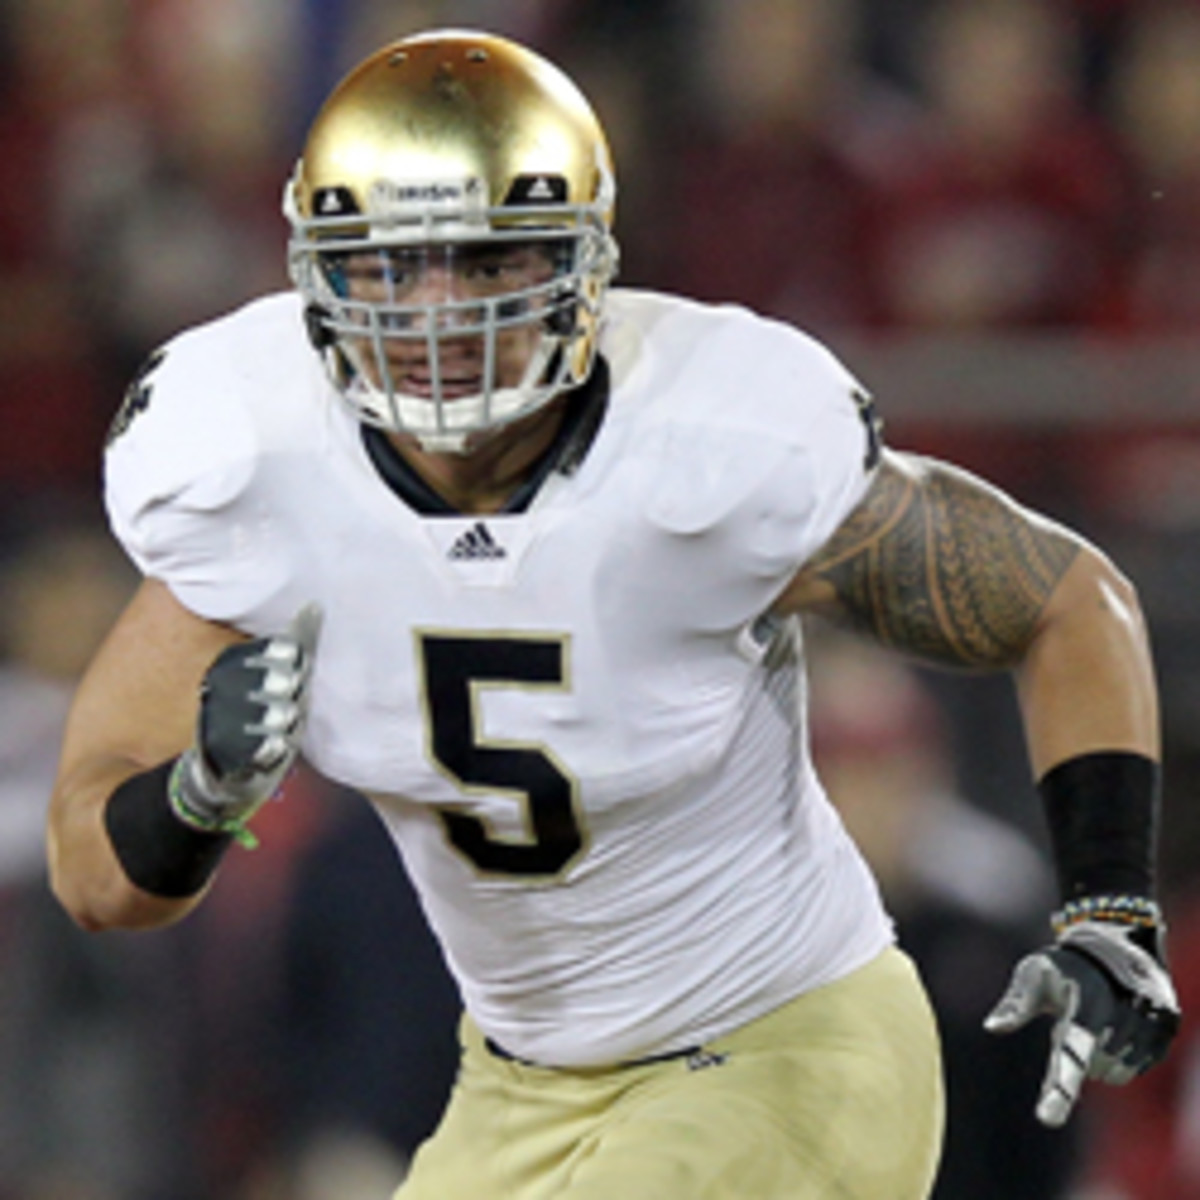 Former Notre Dame LB Manti Te'o is projected to be a late first round pick. (Ezra Shaw/Getty Images)